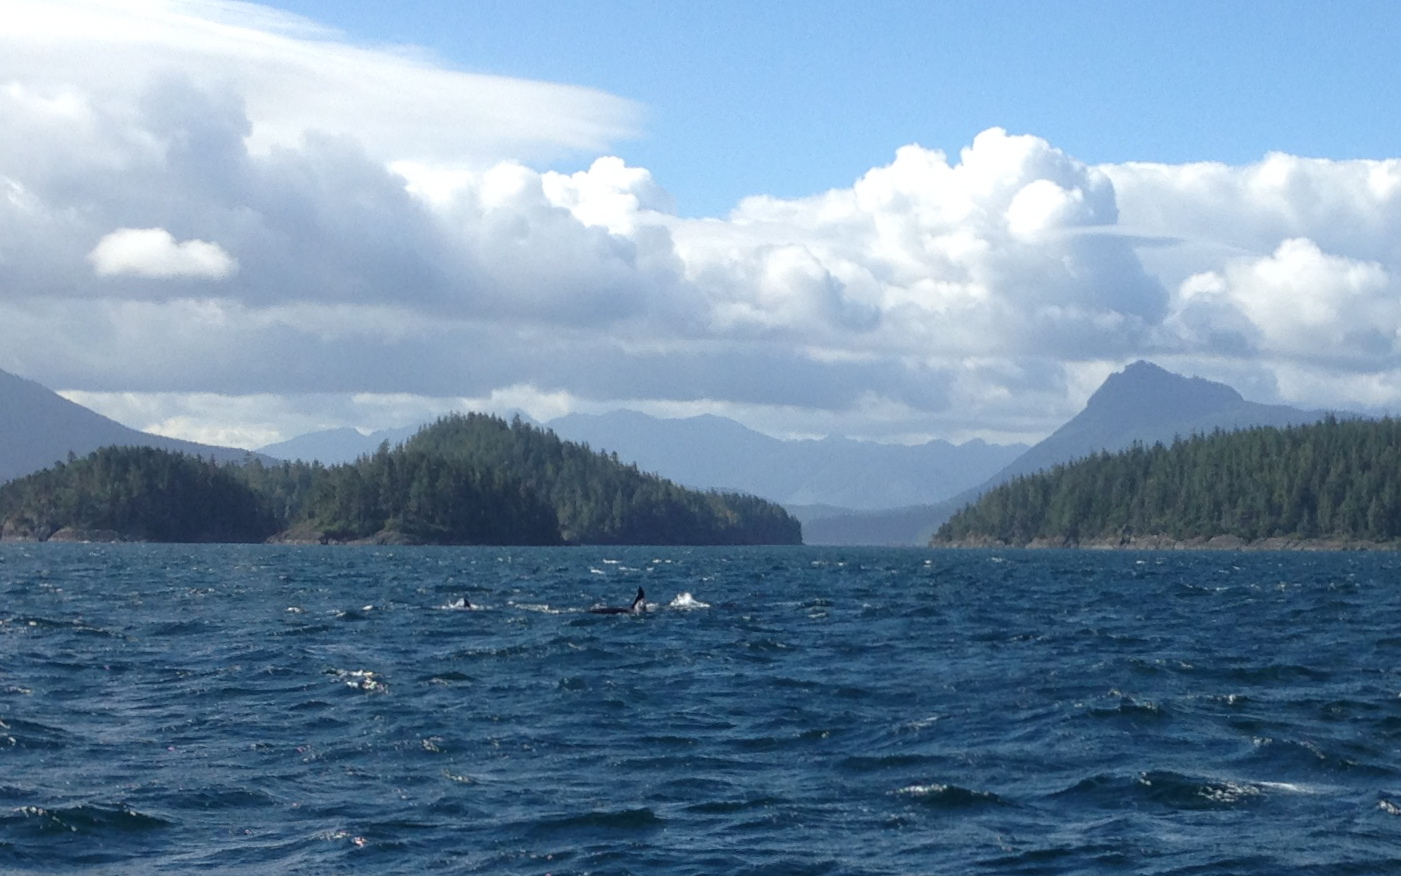 The waves on which we sailed today.